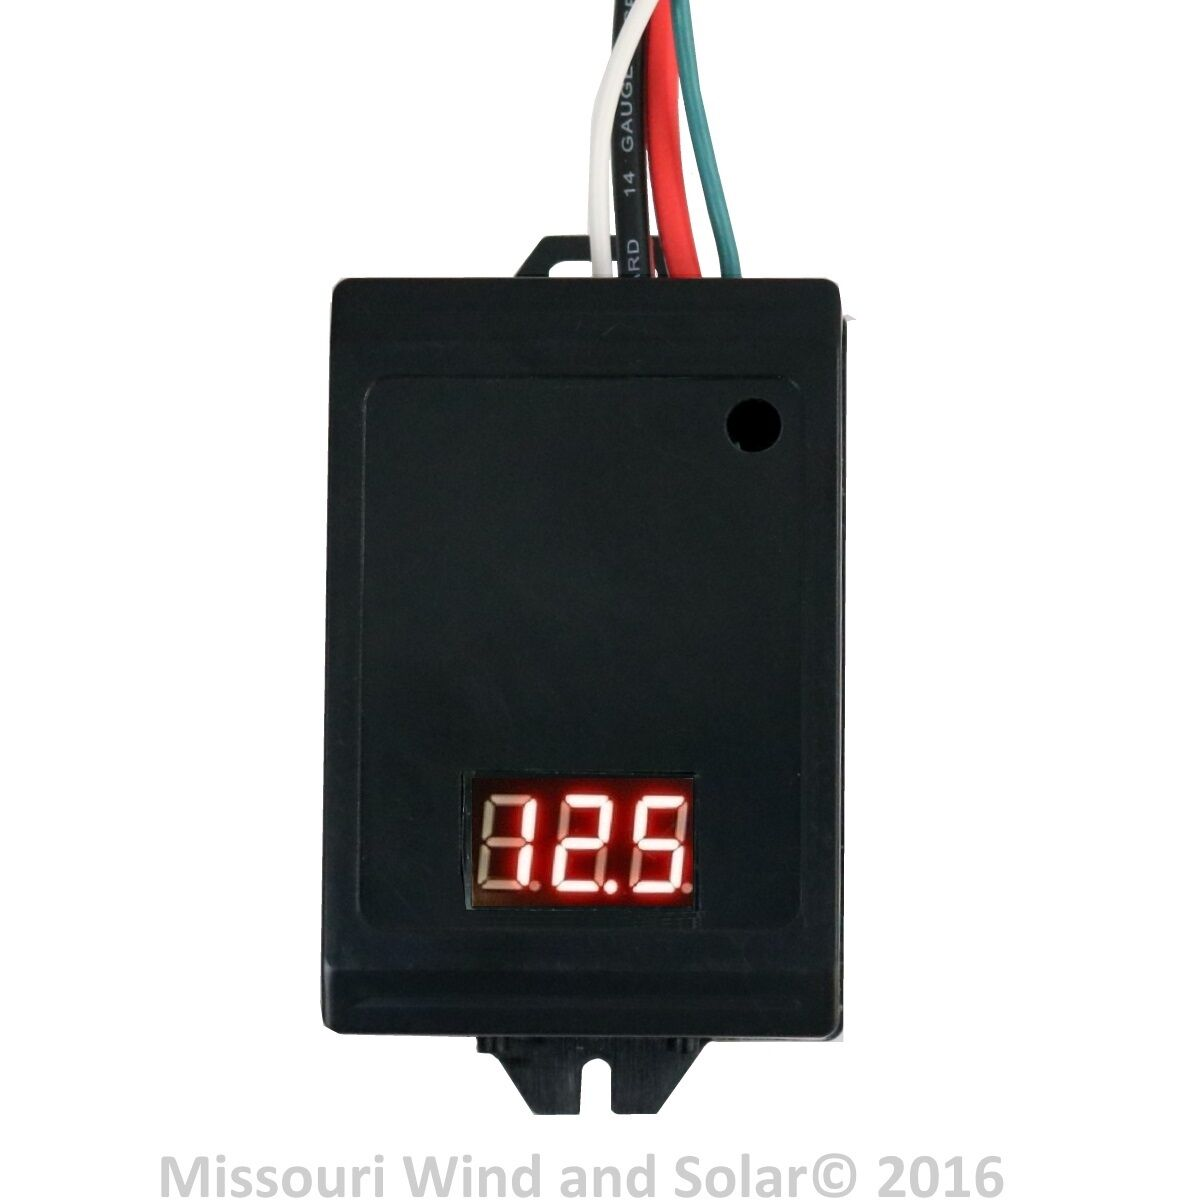 10000 Watt 440 Amp Charge Controller 12 Volt For Wind Turbines Power From Turbine Or Solar Panel To House Wiring Missouri And